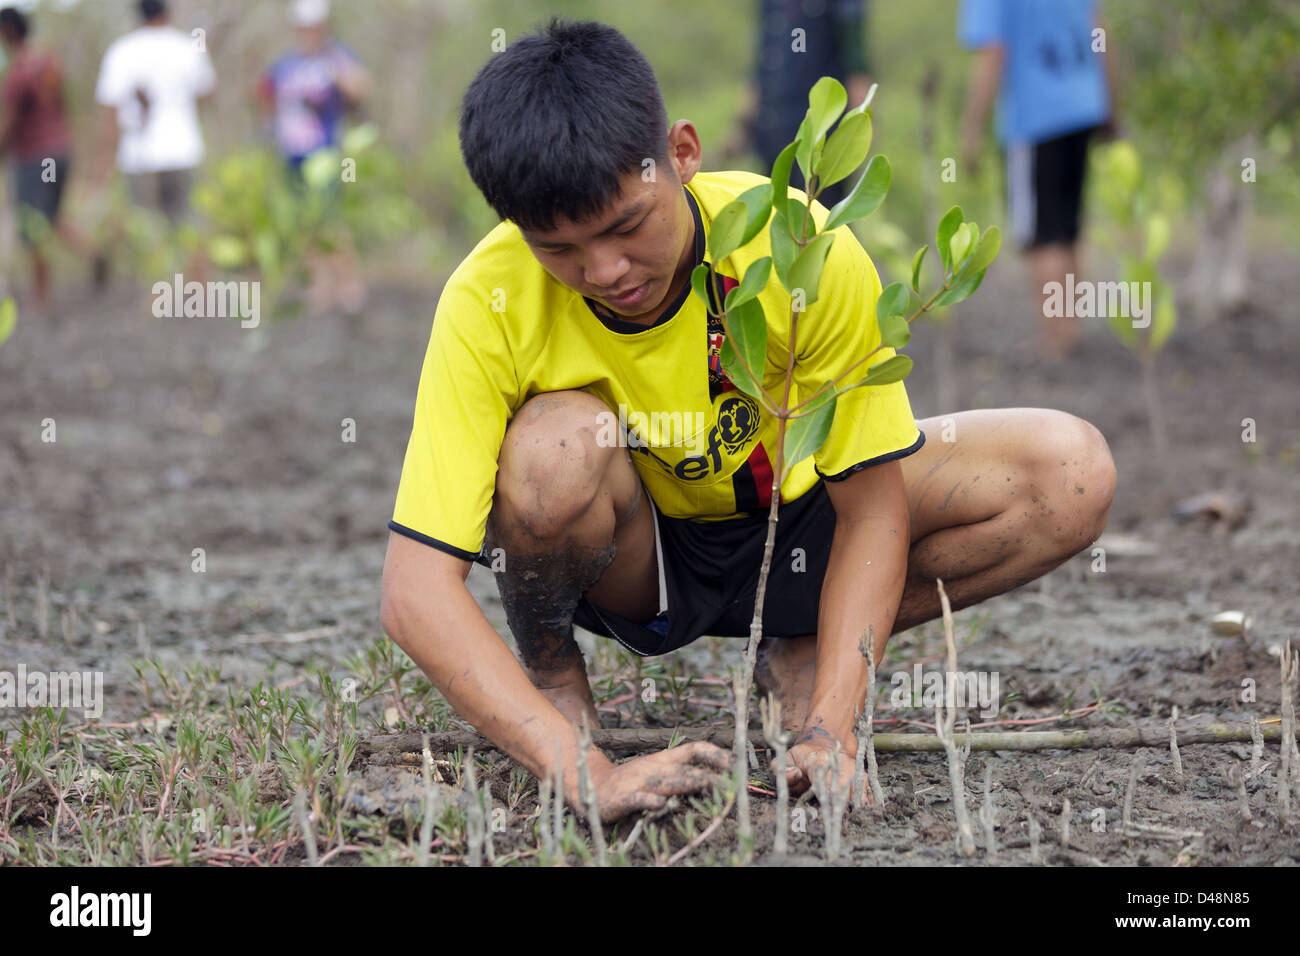 Reforestation Stock Photos & Reforestation Stock Images - Alamy